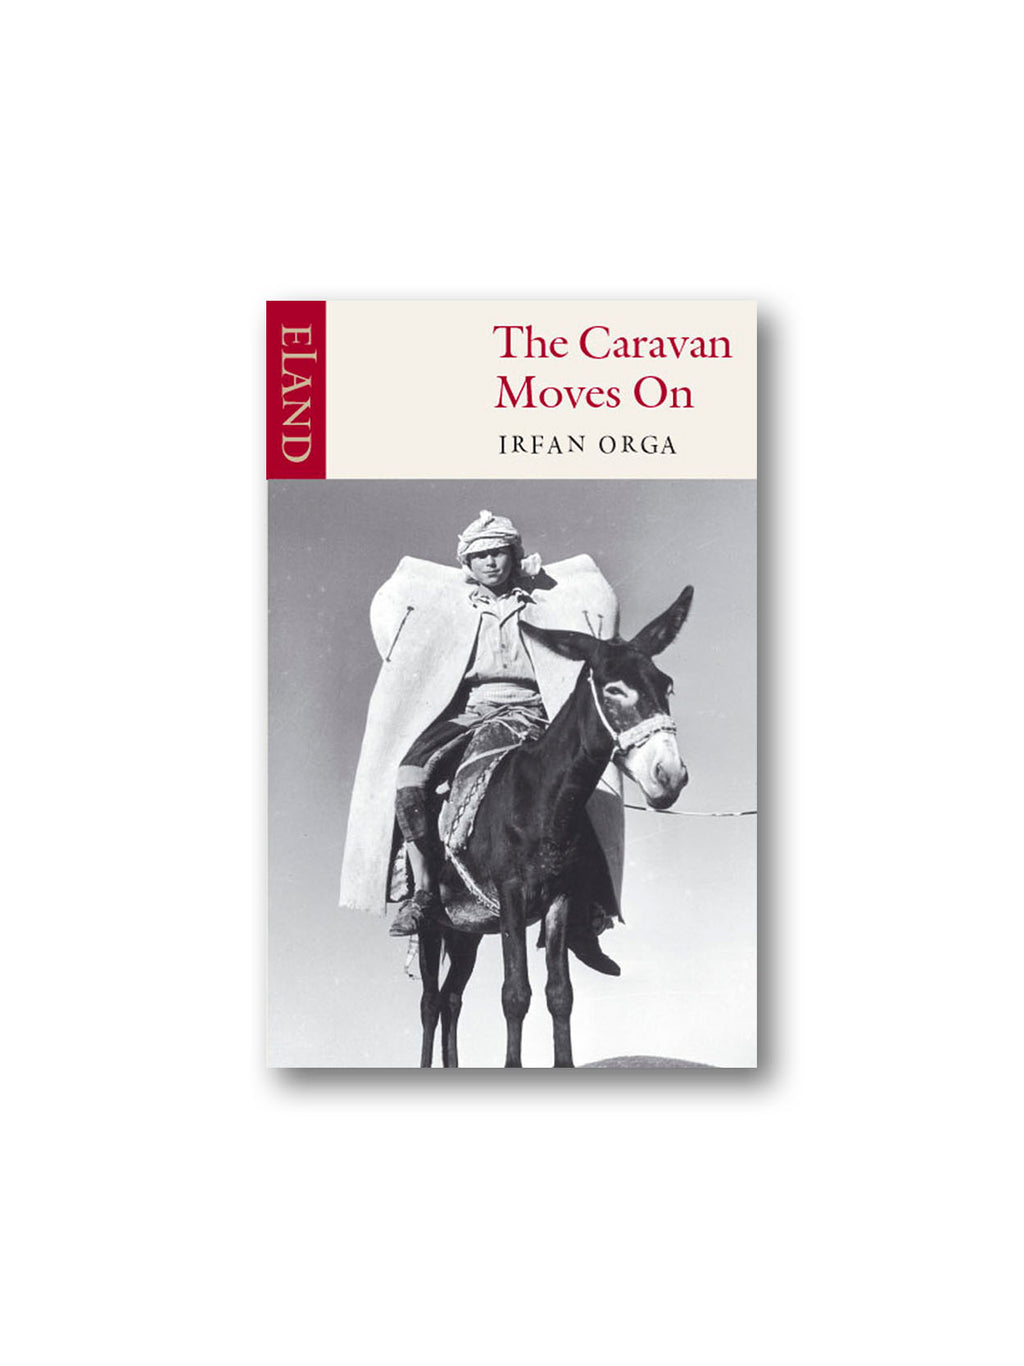 The Caravan Moves on